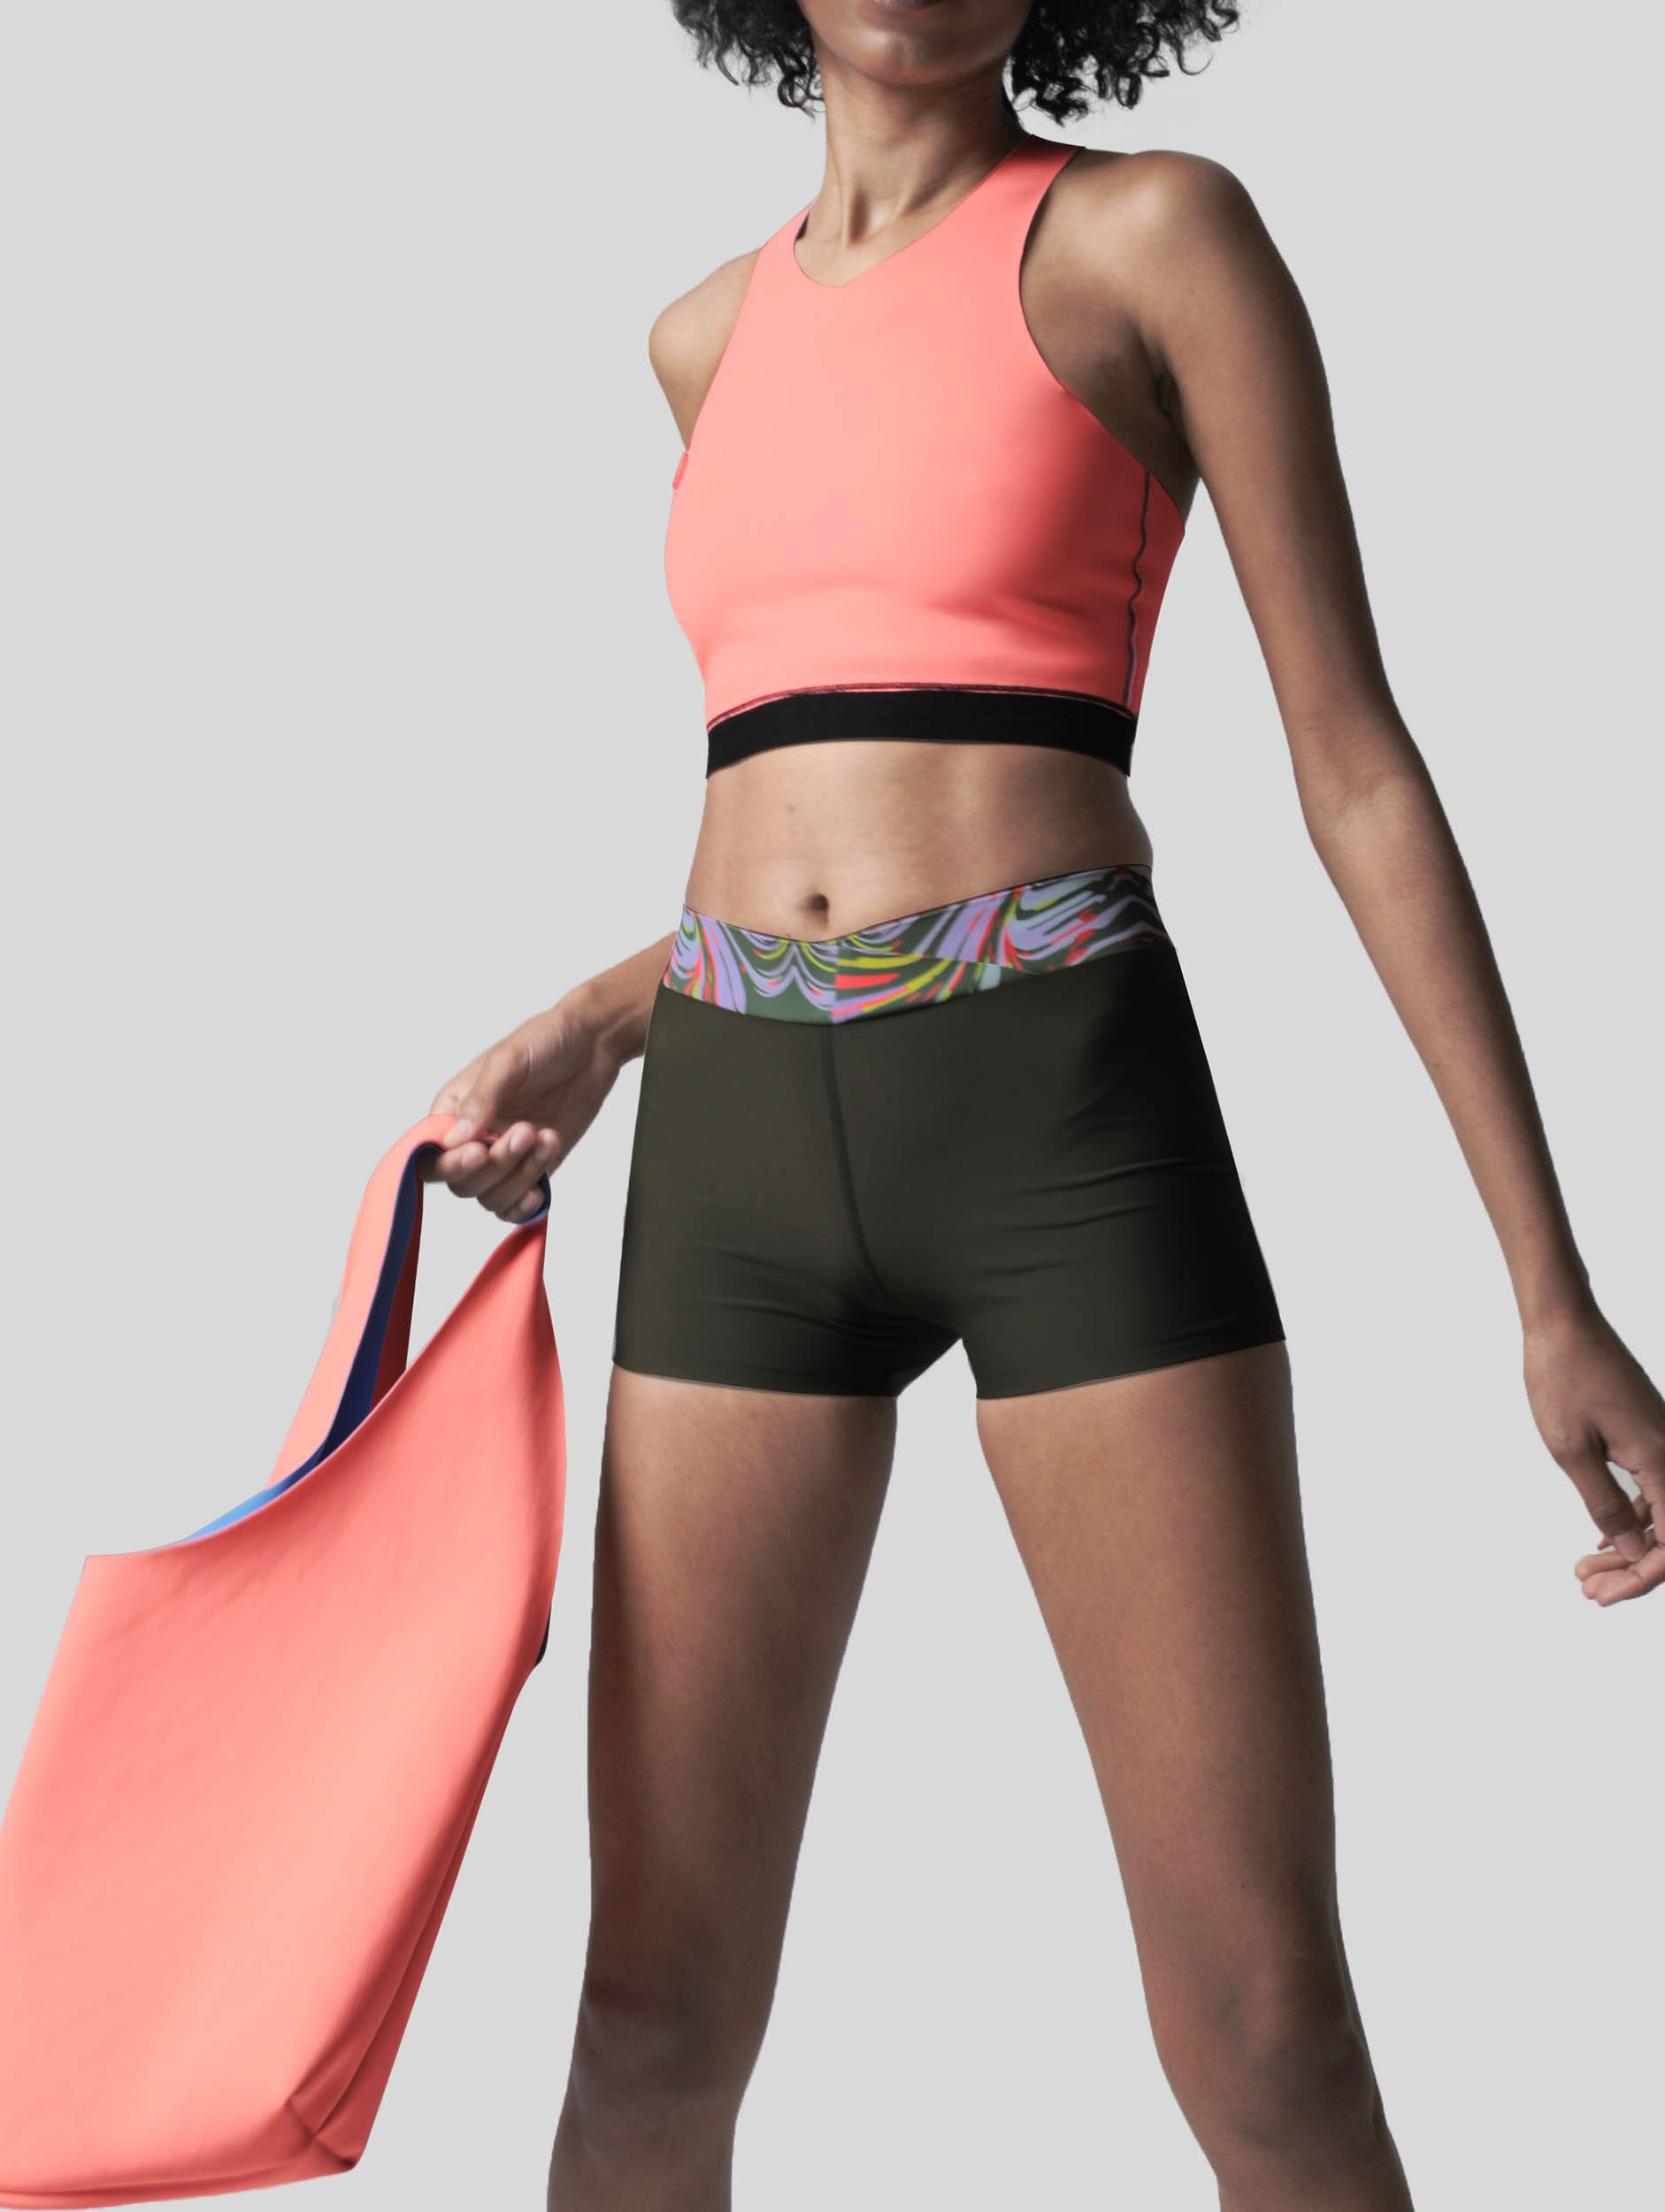 Yorstruly Surfer Top